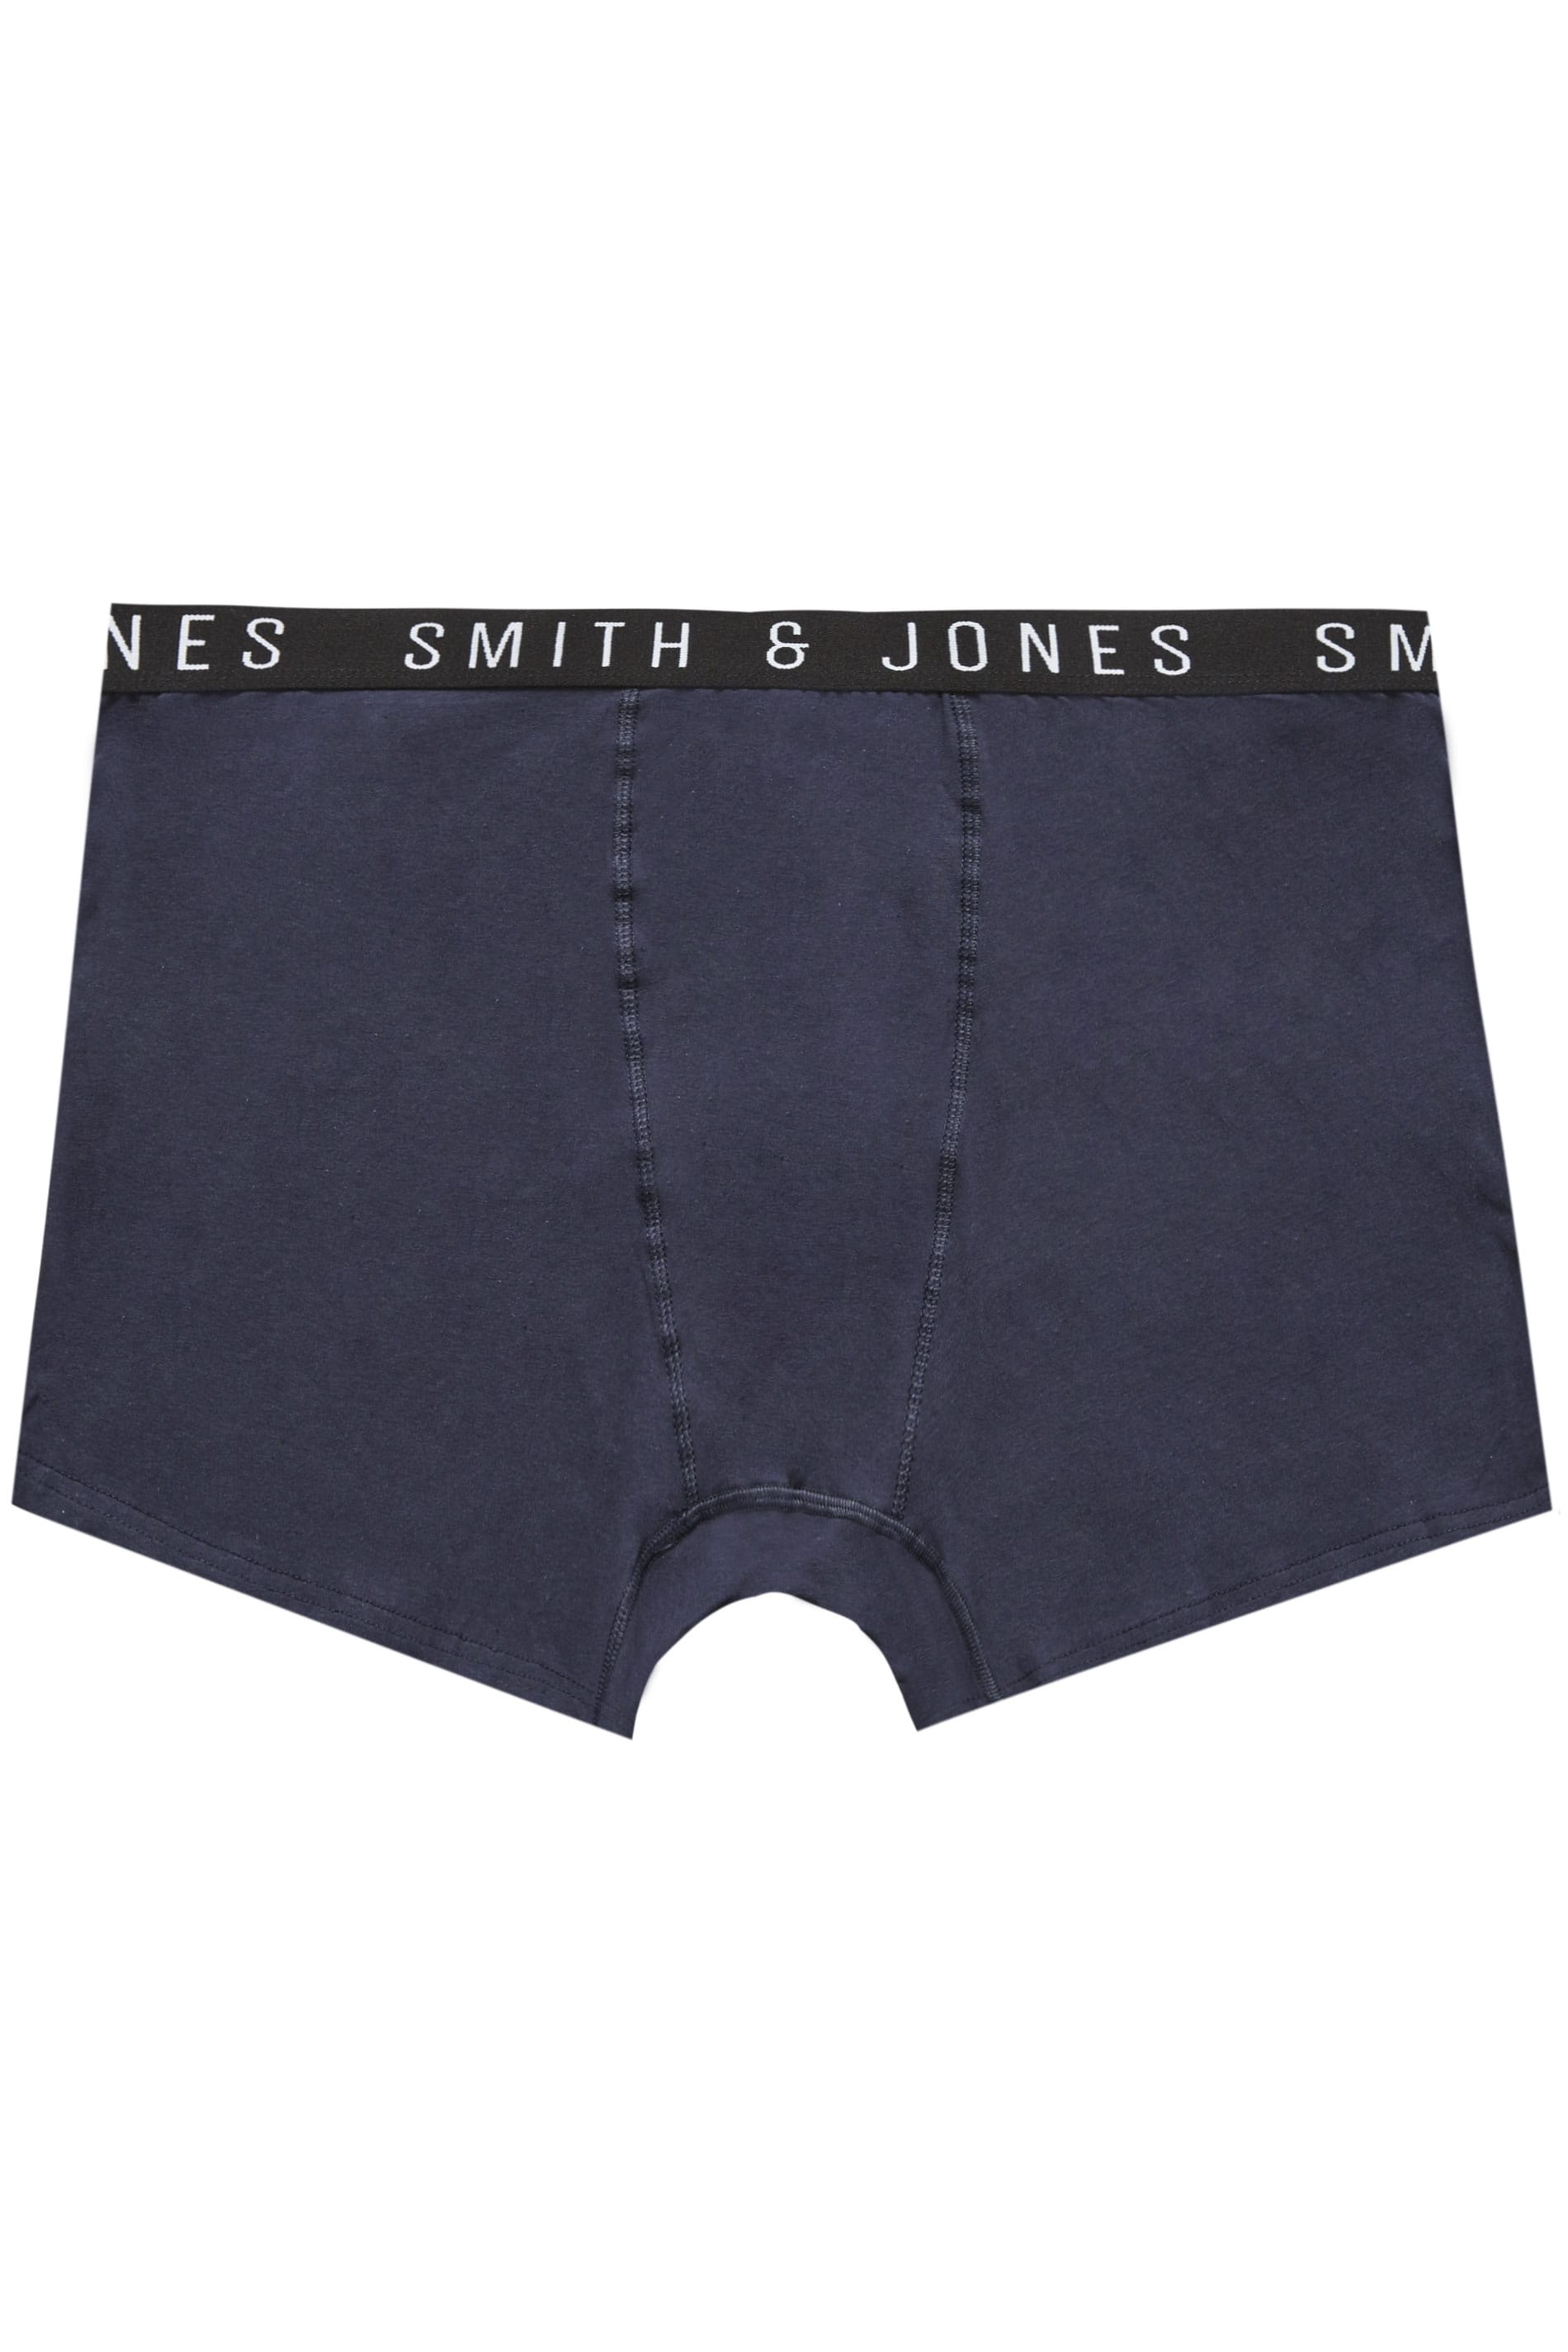 really cheap sale usa online cheap sale 3 PACK SMITH & JONES Essential Elasticated A Front Boxers